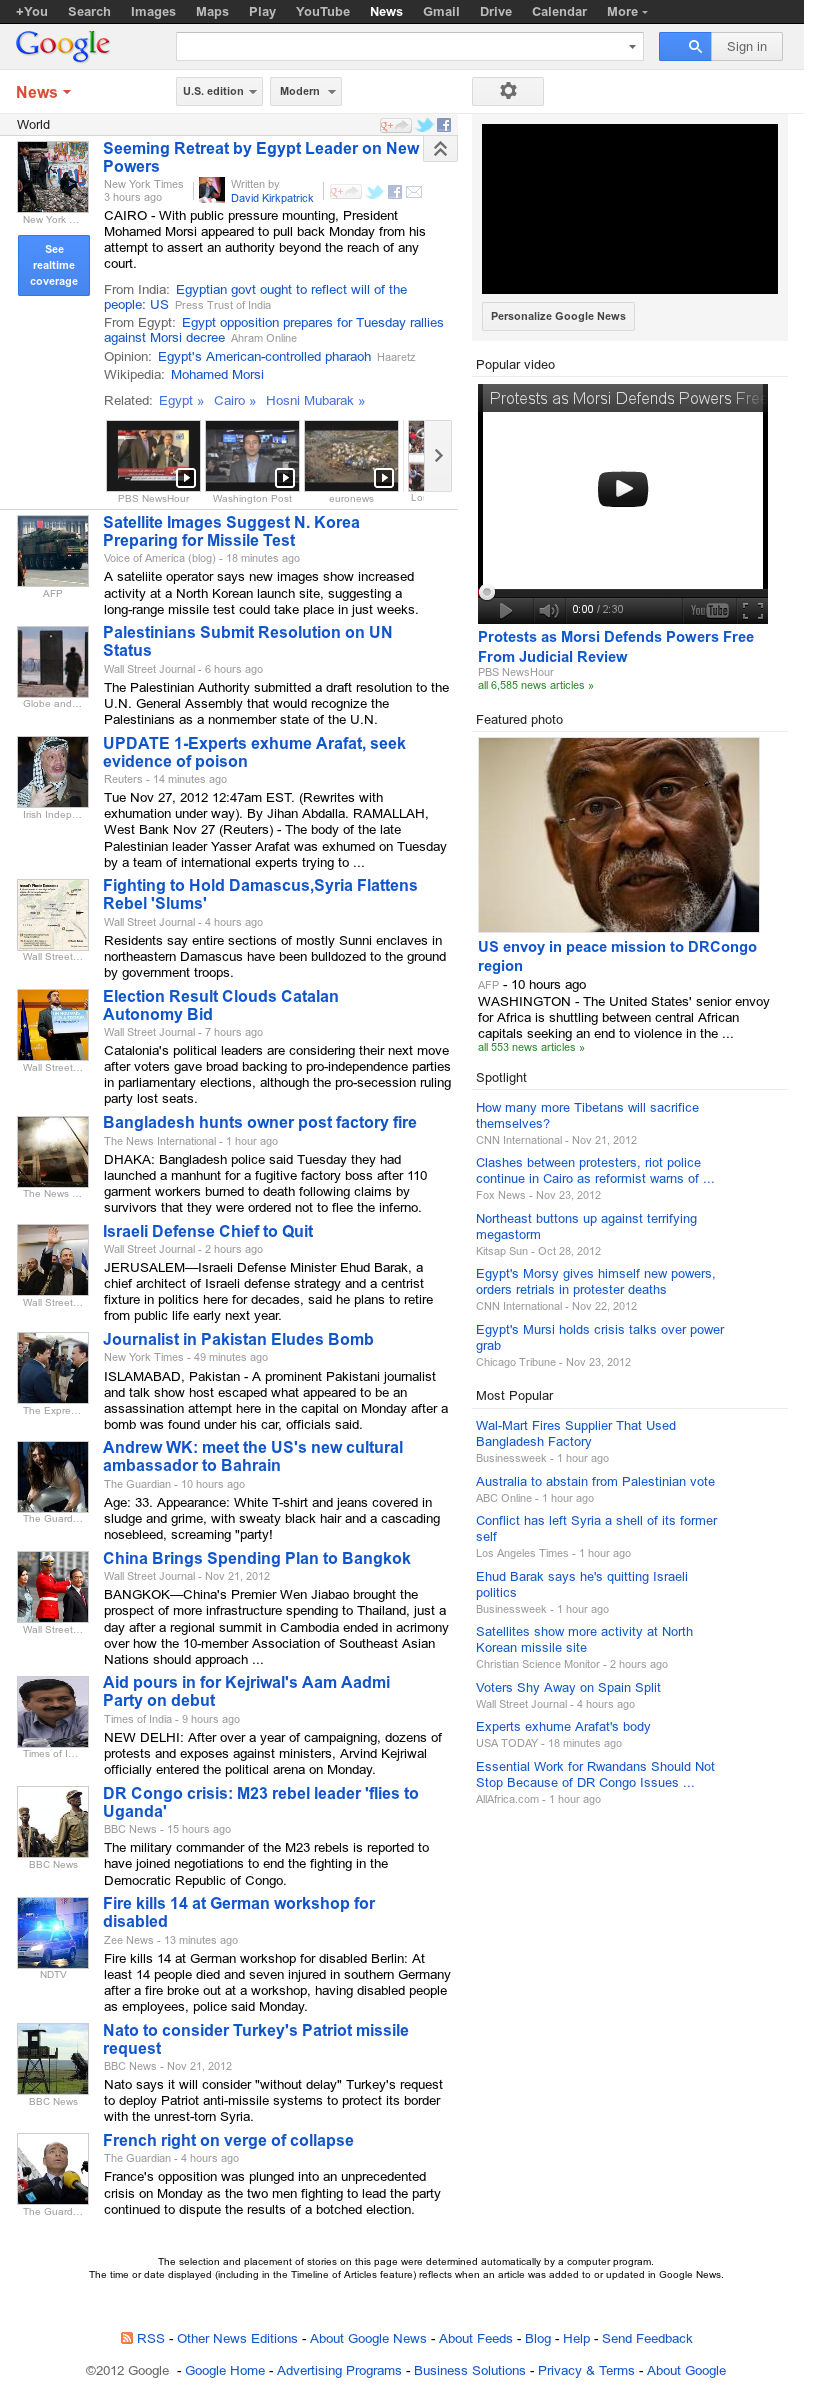 Google News: World at Tuesday Nov. 27, 2012, 6:13 a.m. UTC